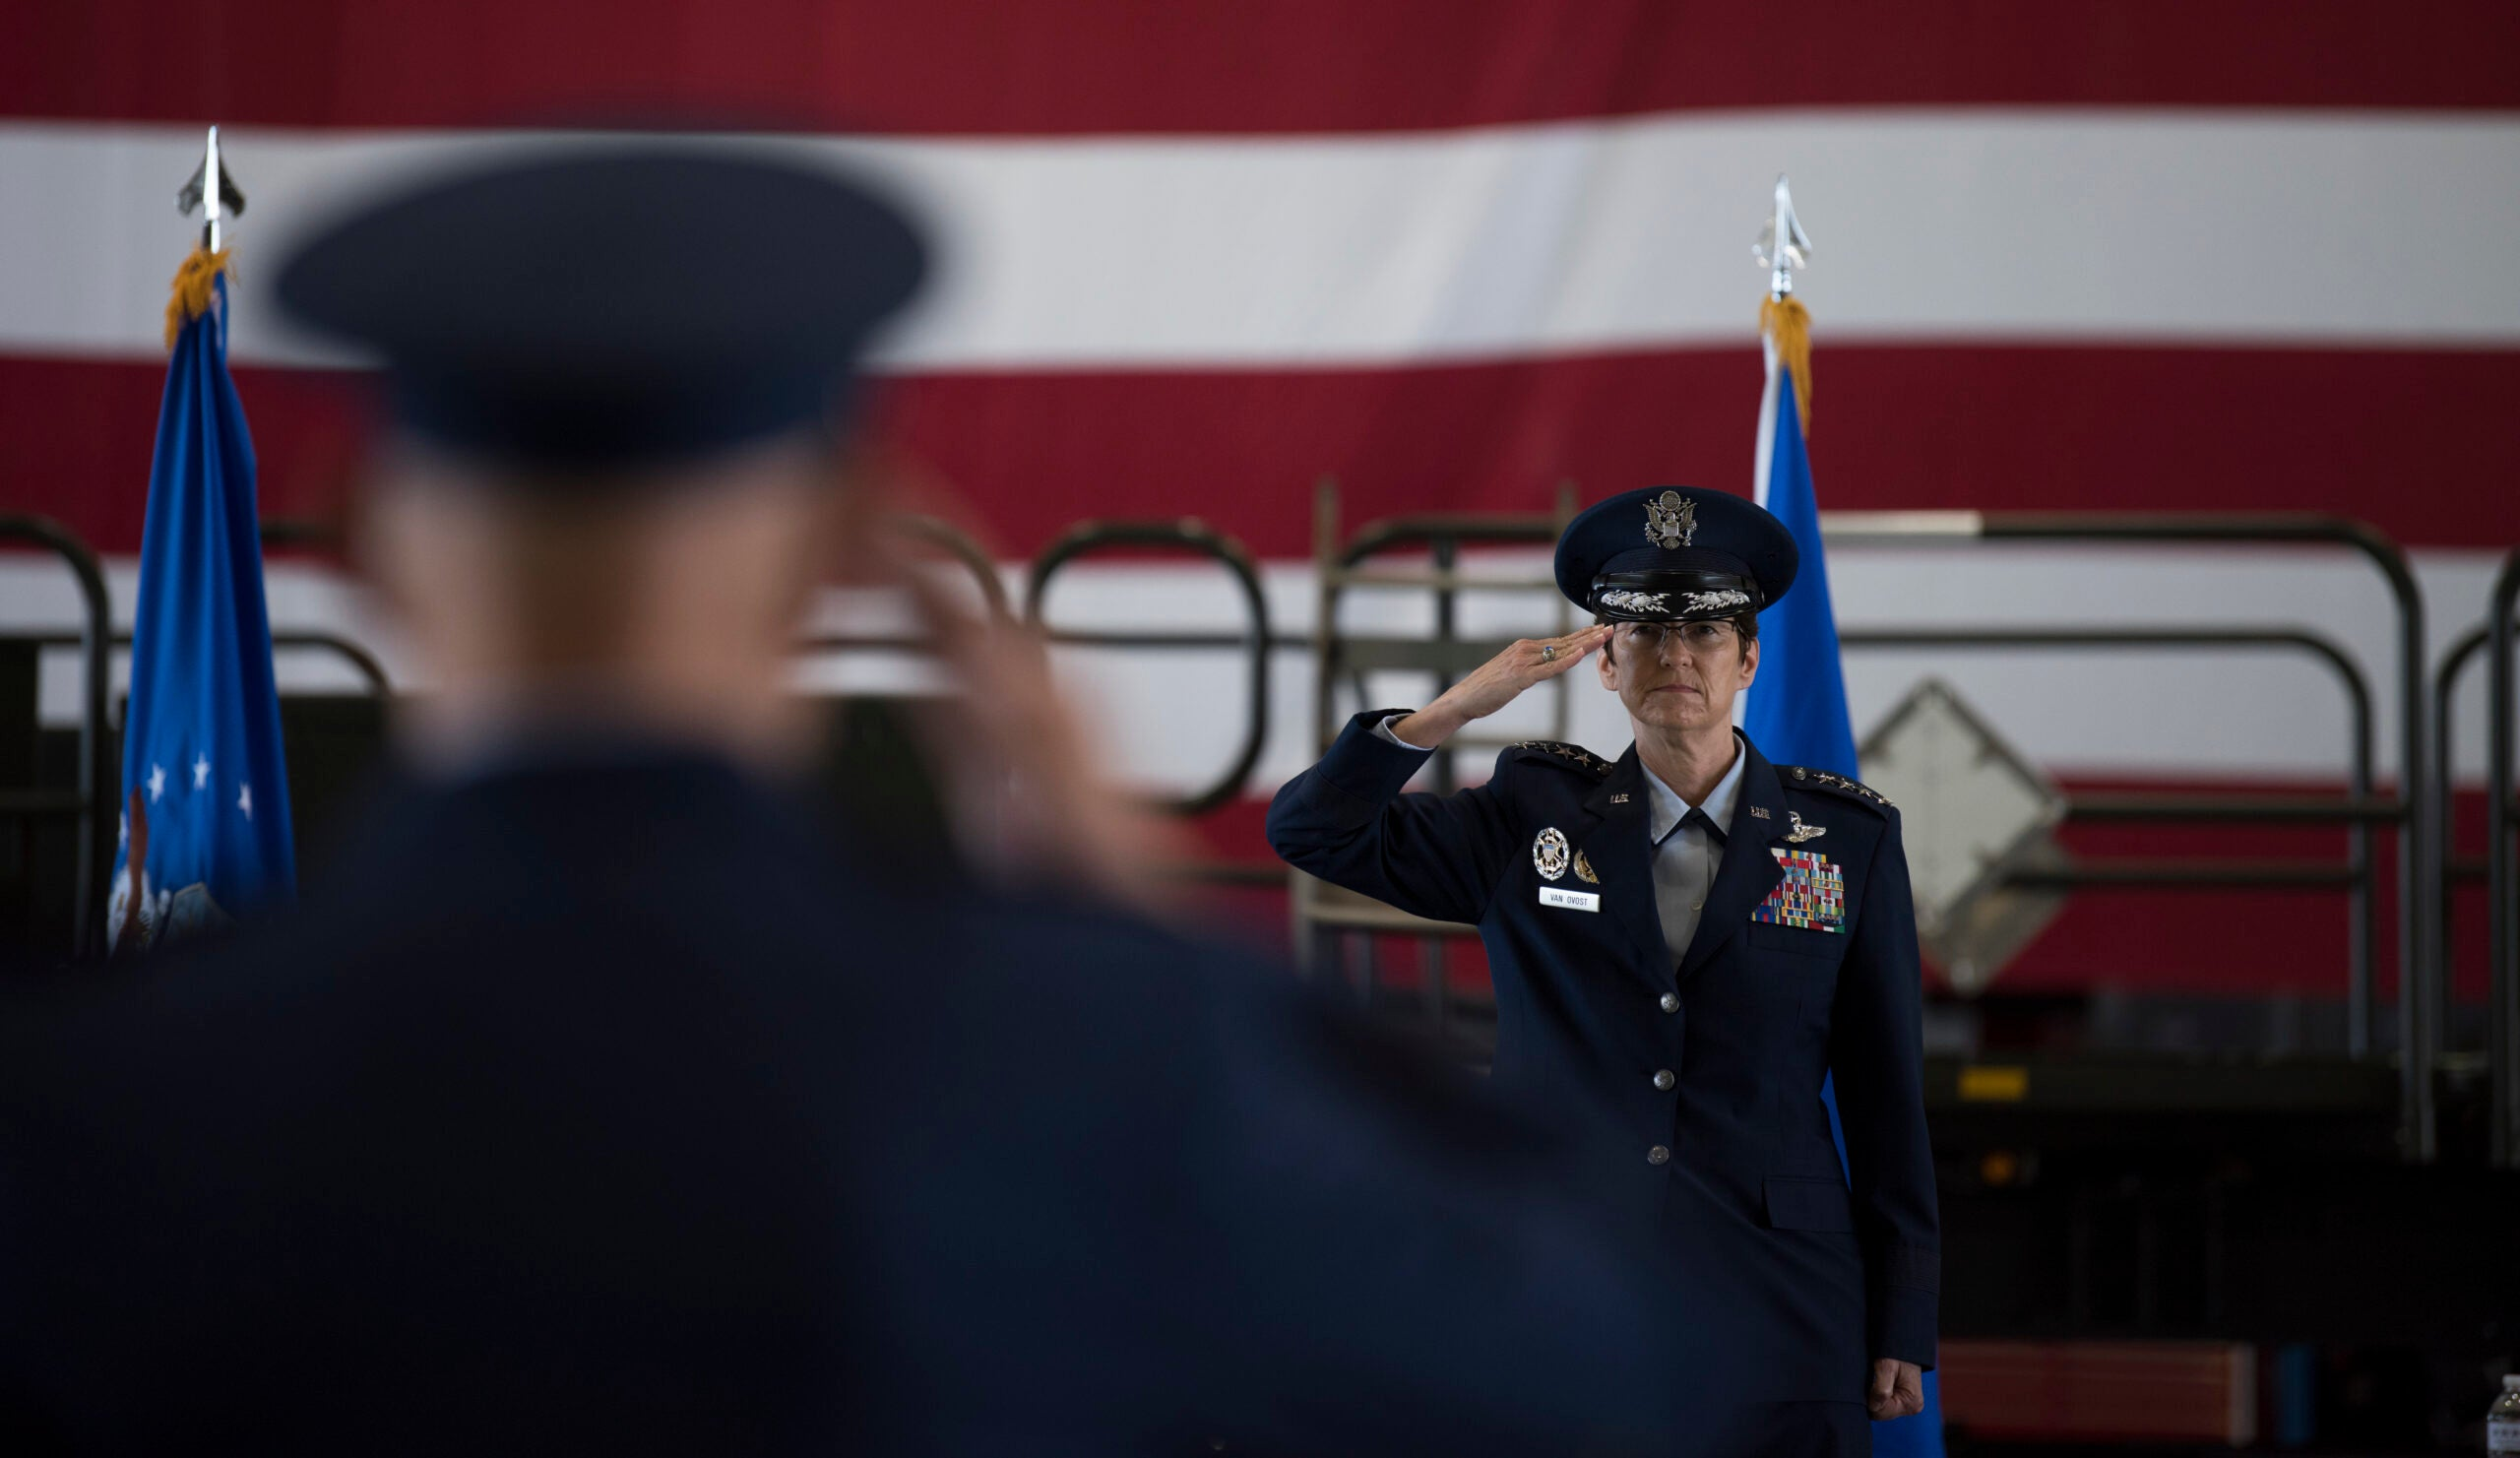 She once was barred from fighter jets. Now she's the Pentagon's only female four-star